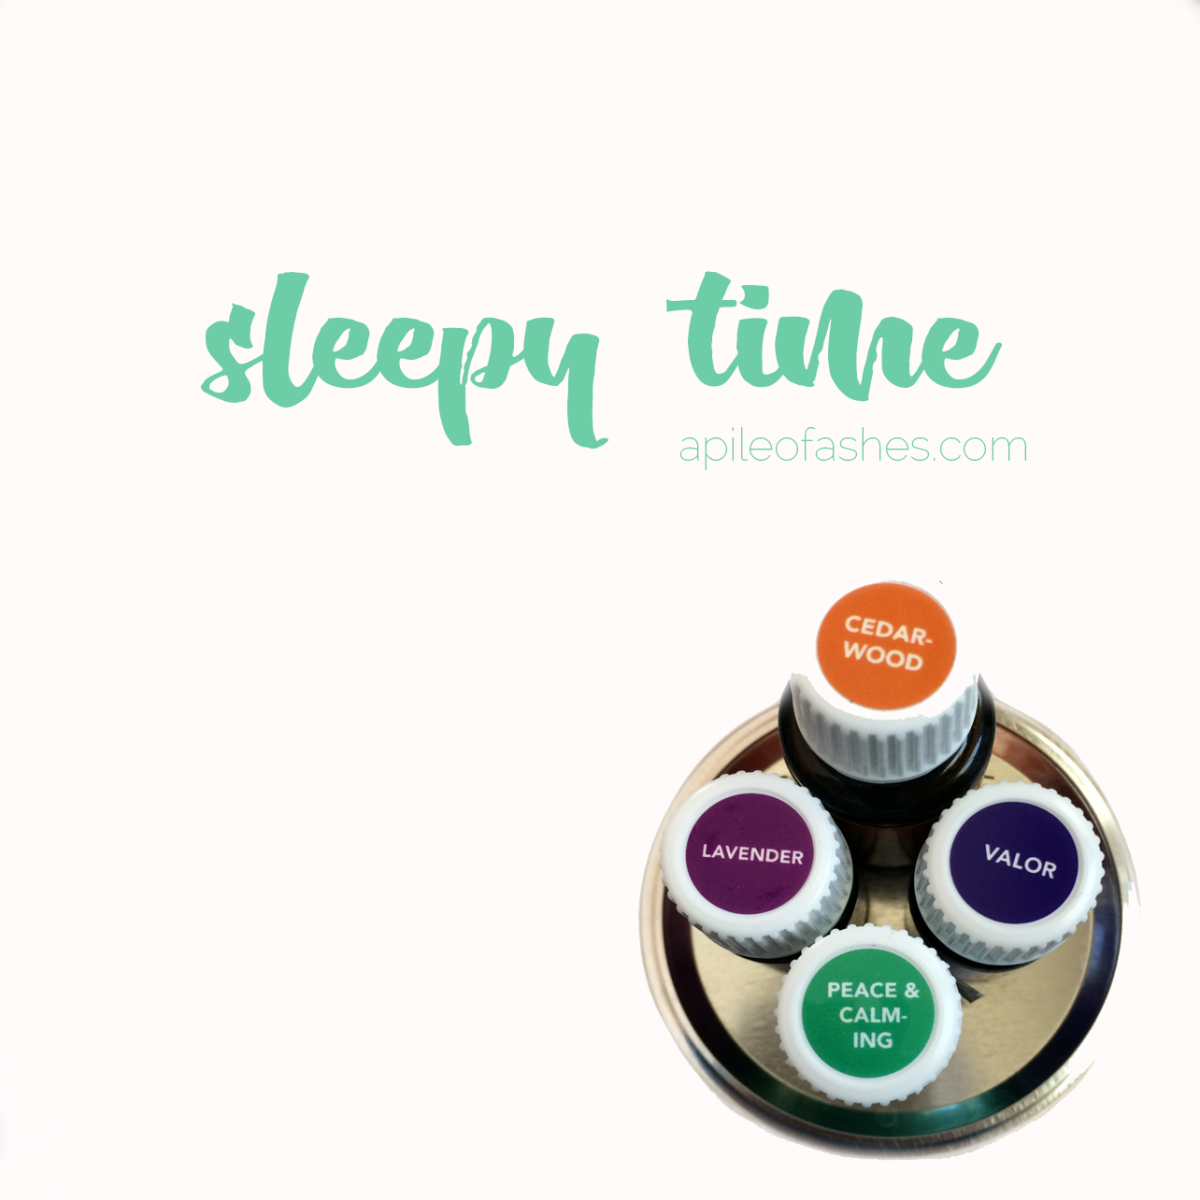 Bed Time Rub with Essential Oils {Sleepy Time!}